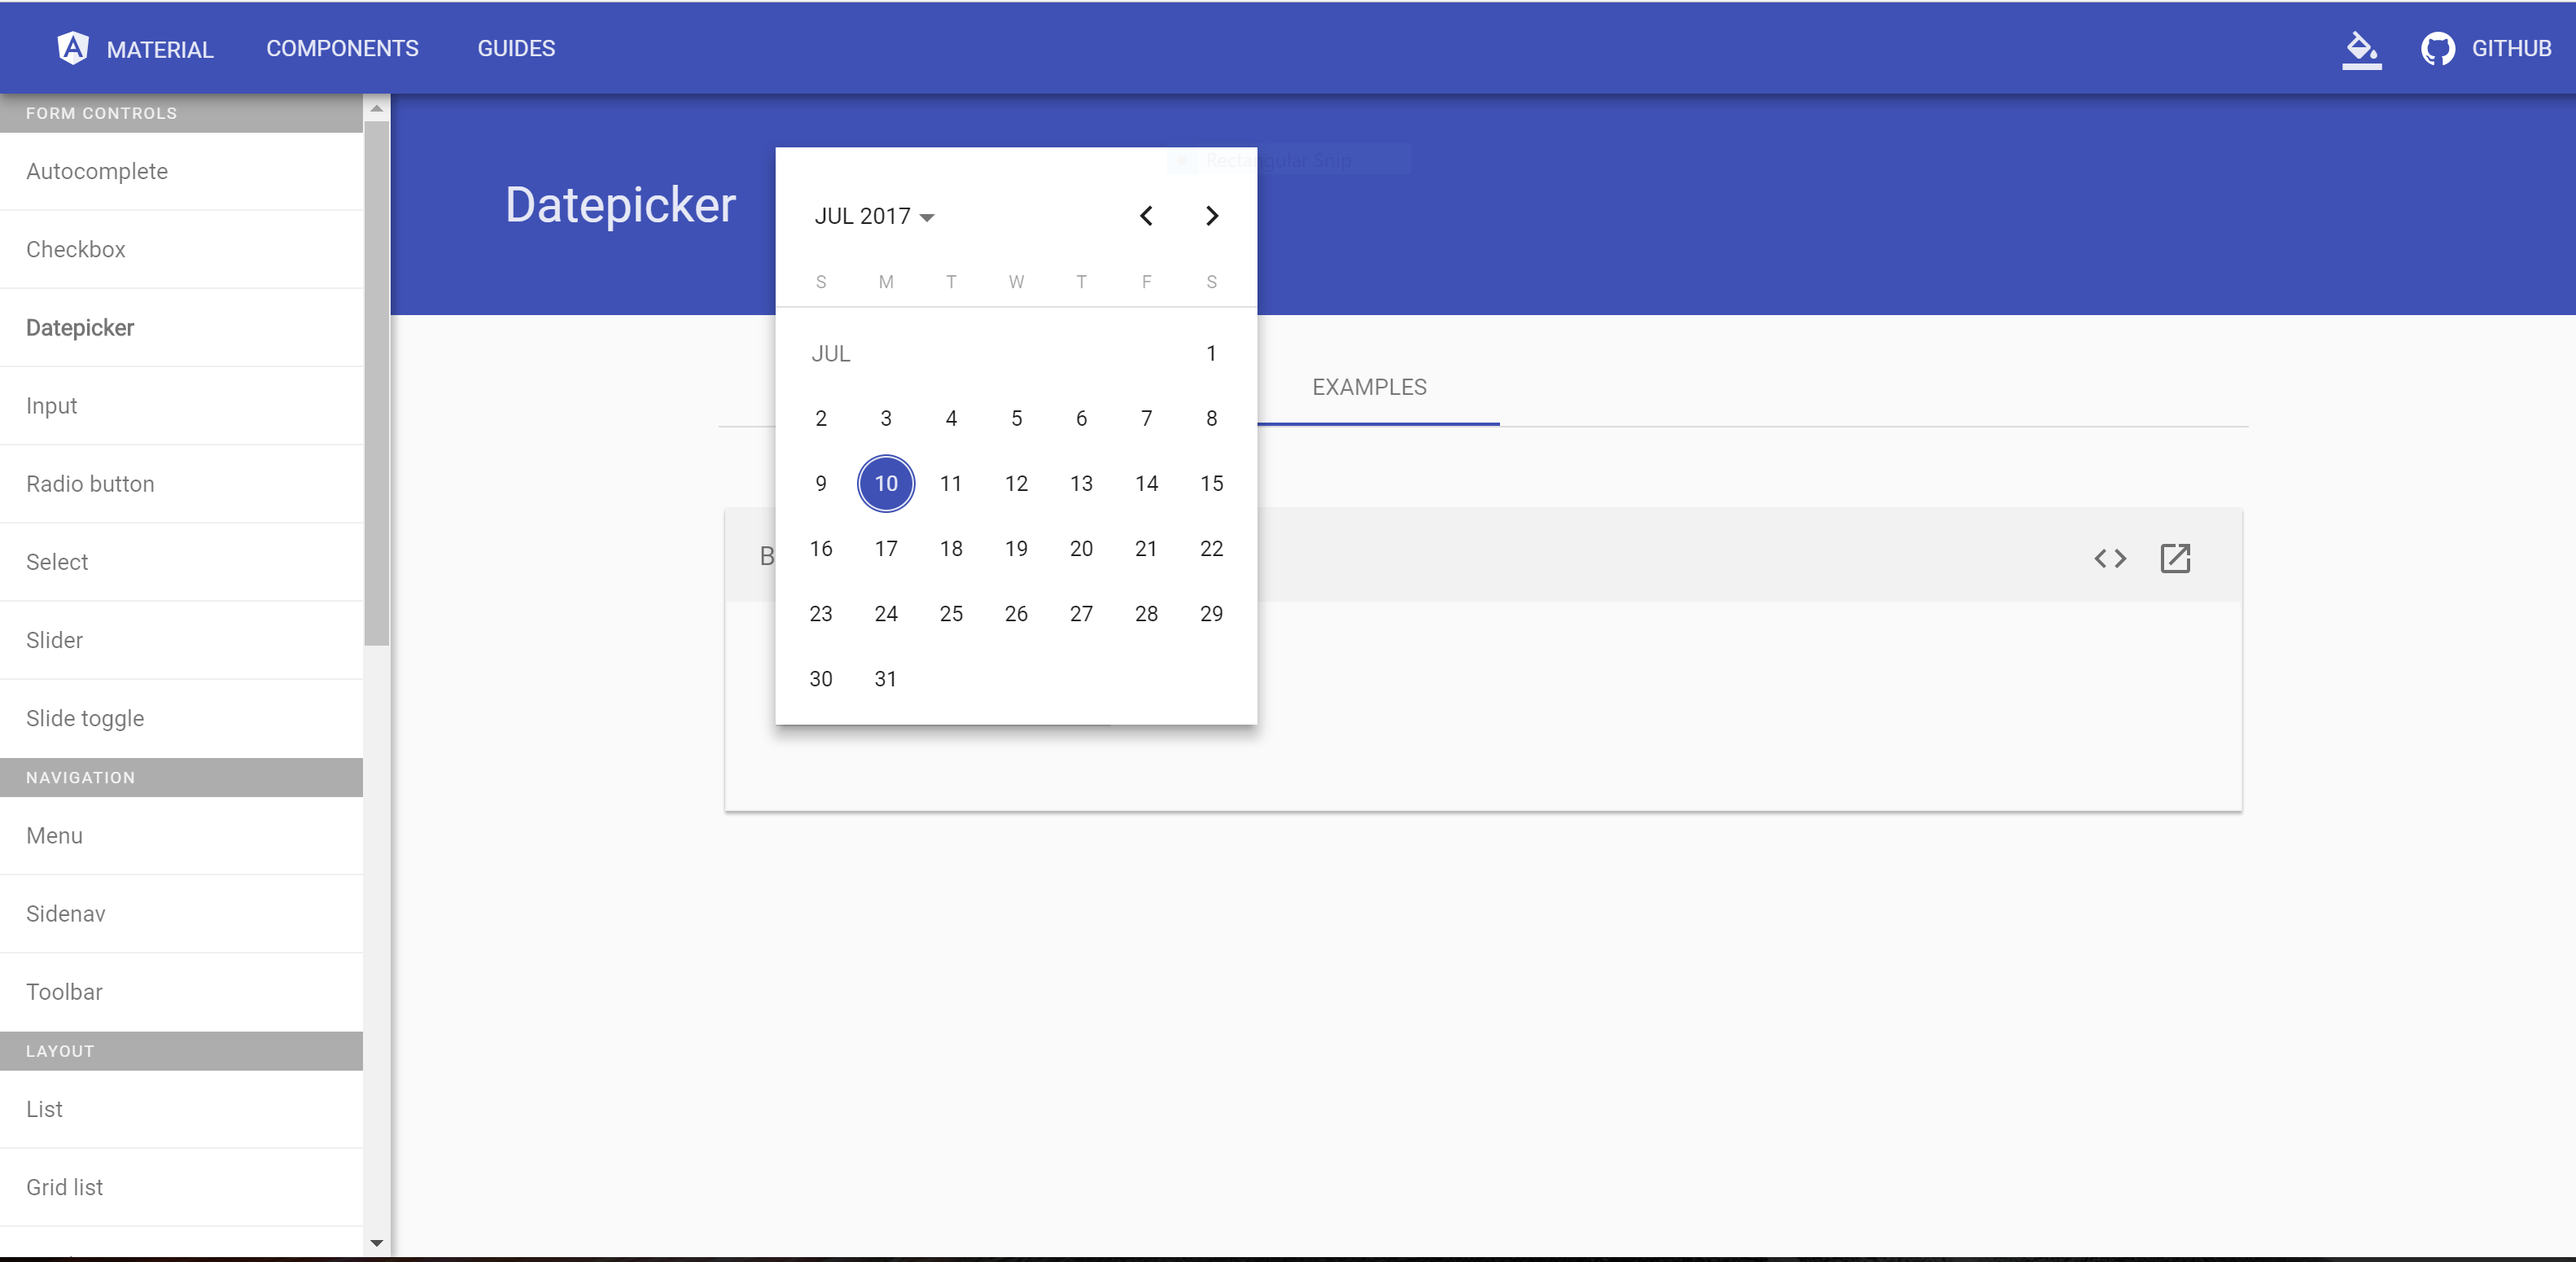 datepicker doesn't open to correct month for non US date format